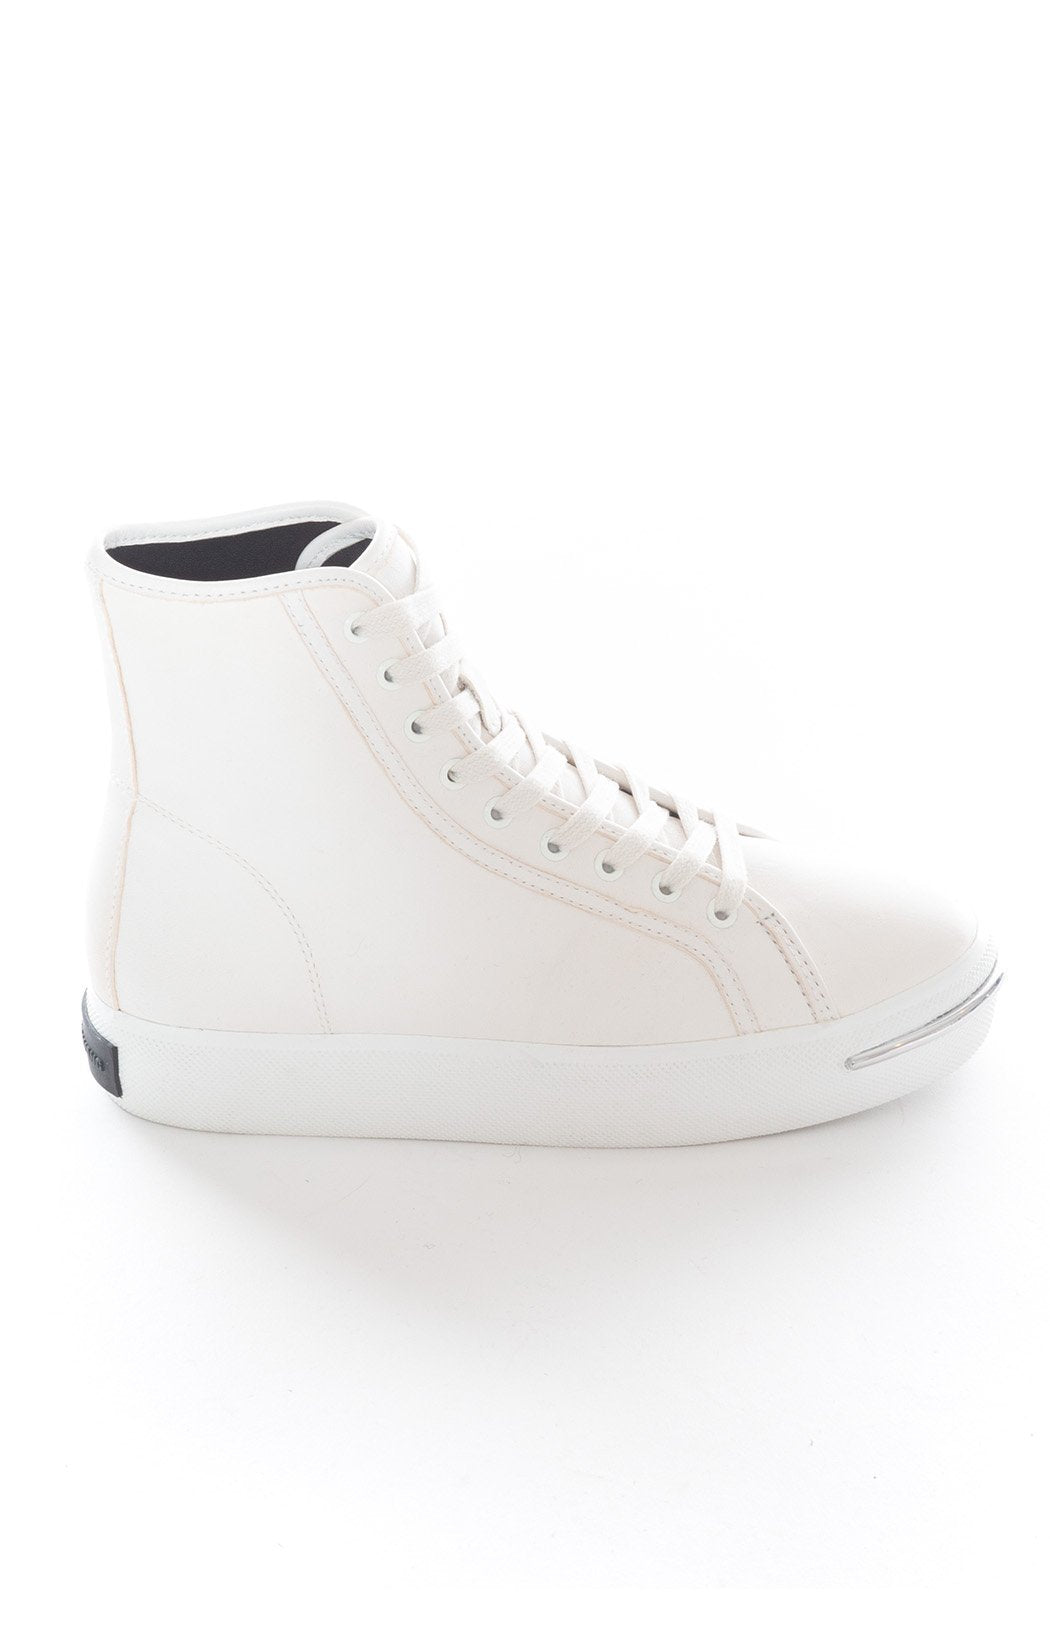 Side view of ALEXANDER WANG Tennis shoe